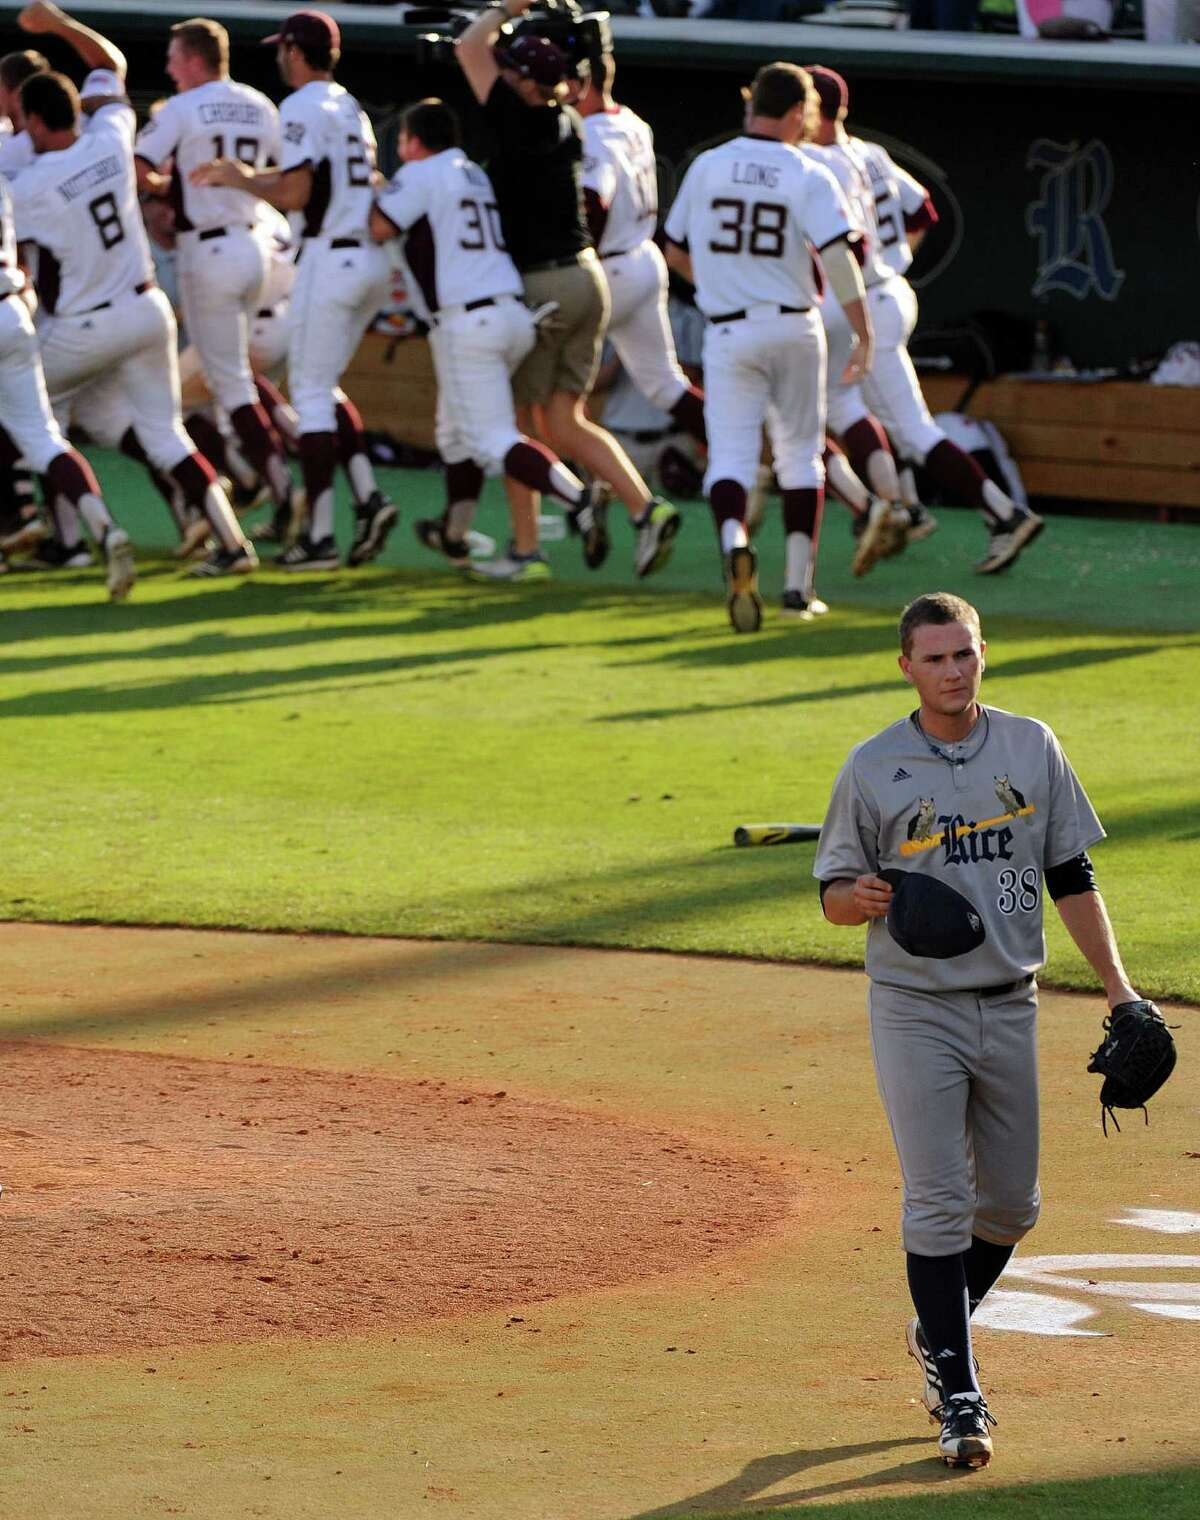 A wild pitch by Rice's Matt Ditman, bottom, allowed the winning run to score in the 10th inning and set off an A&M celebration while ending the Owls' season.